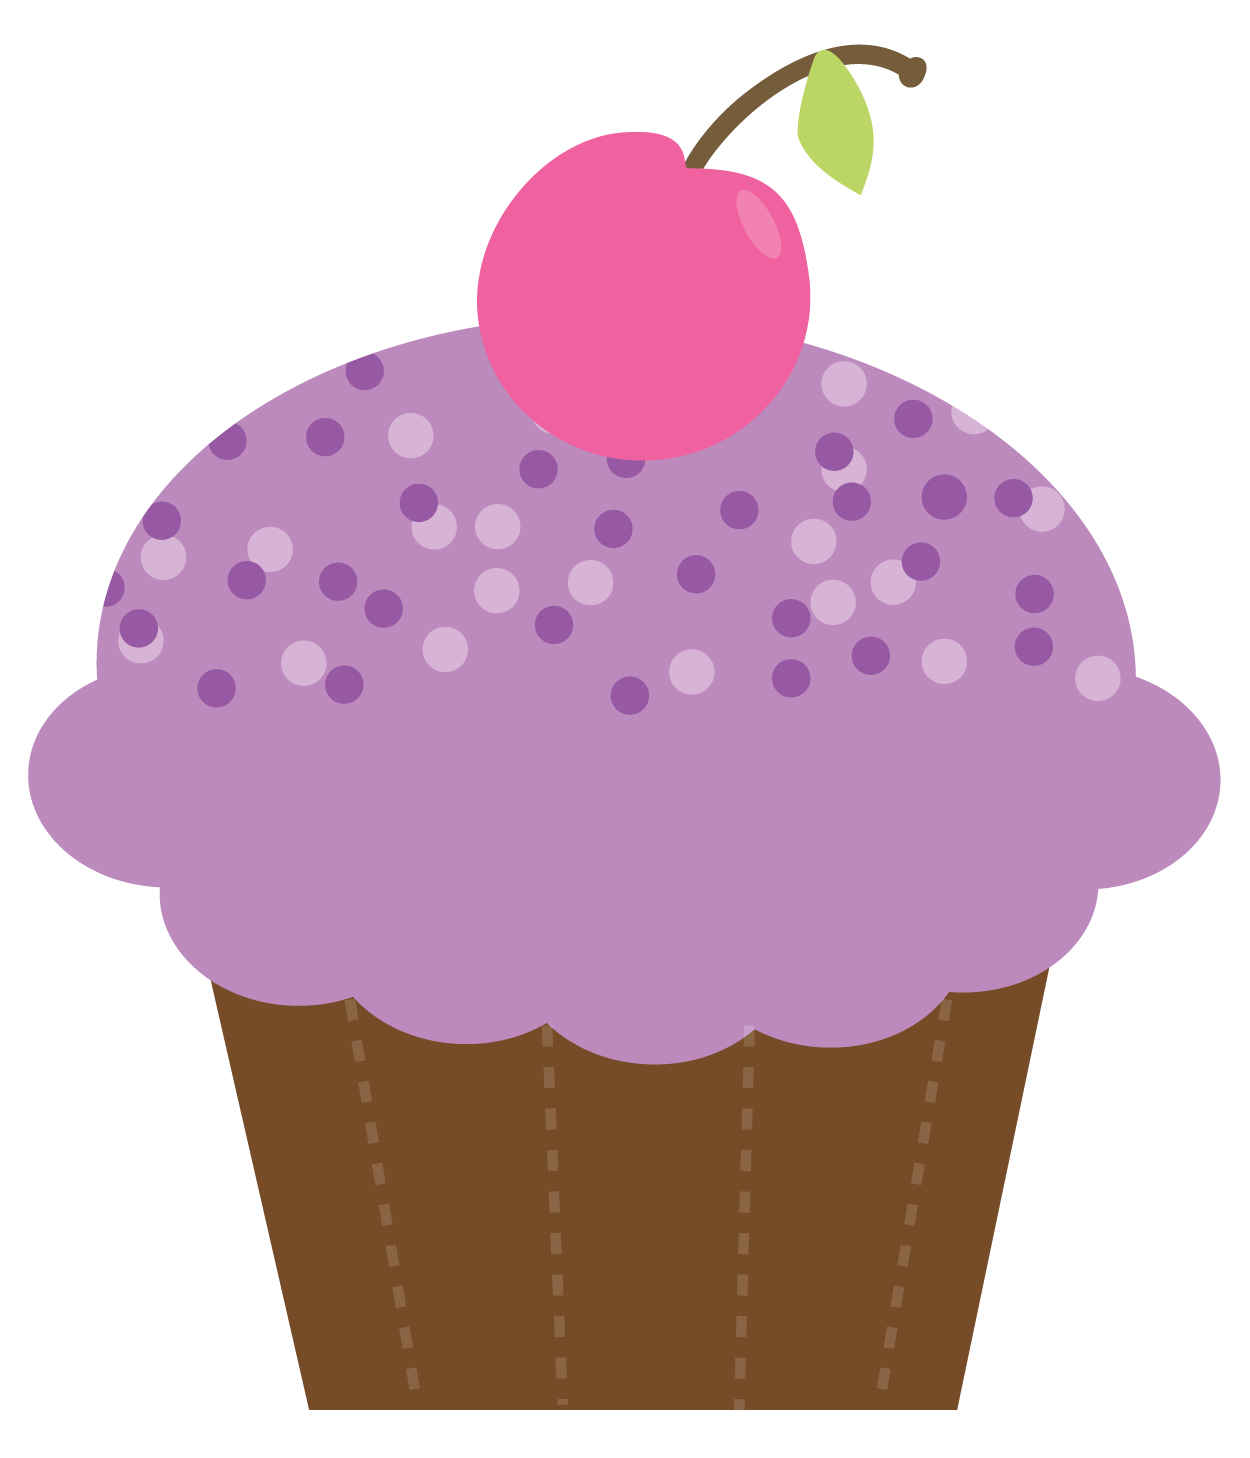 Having a at school. Bing clipart cupcake